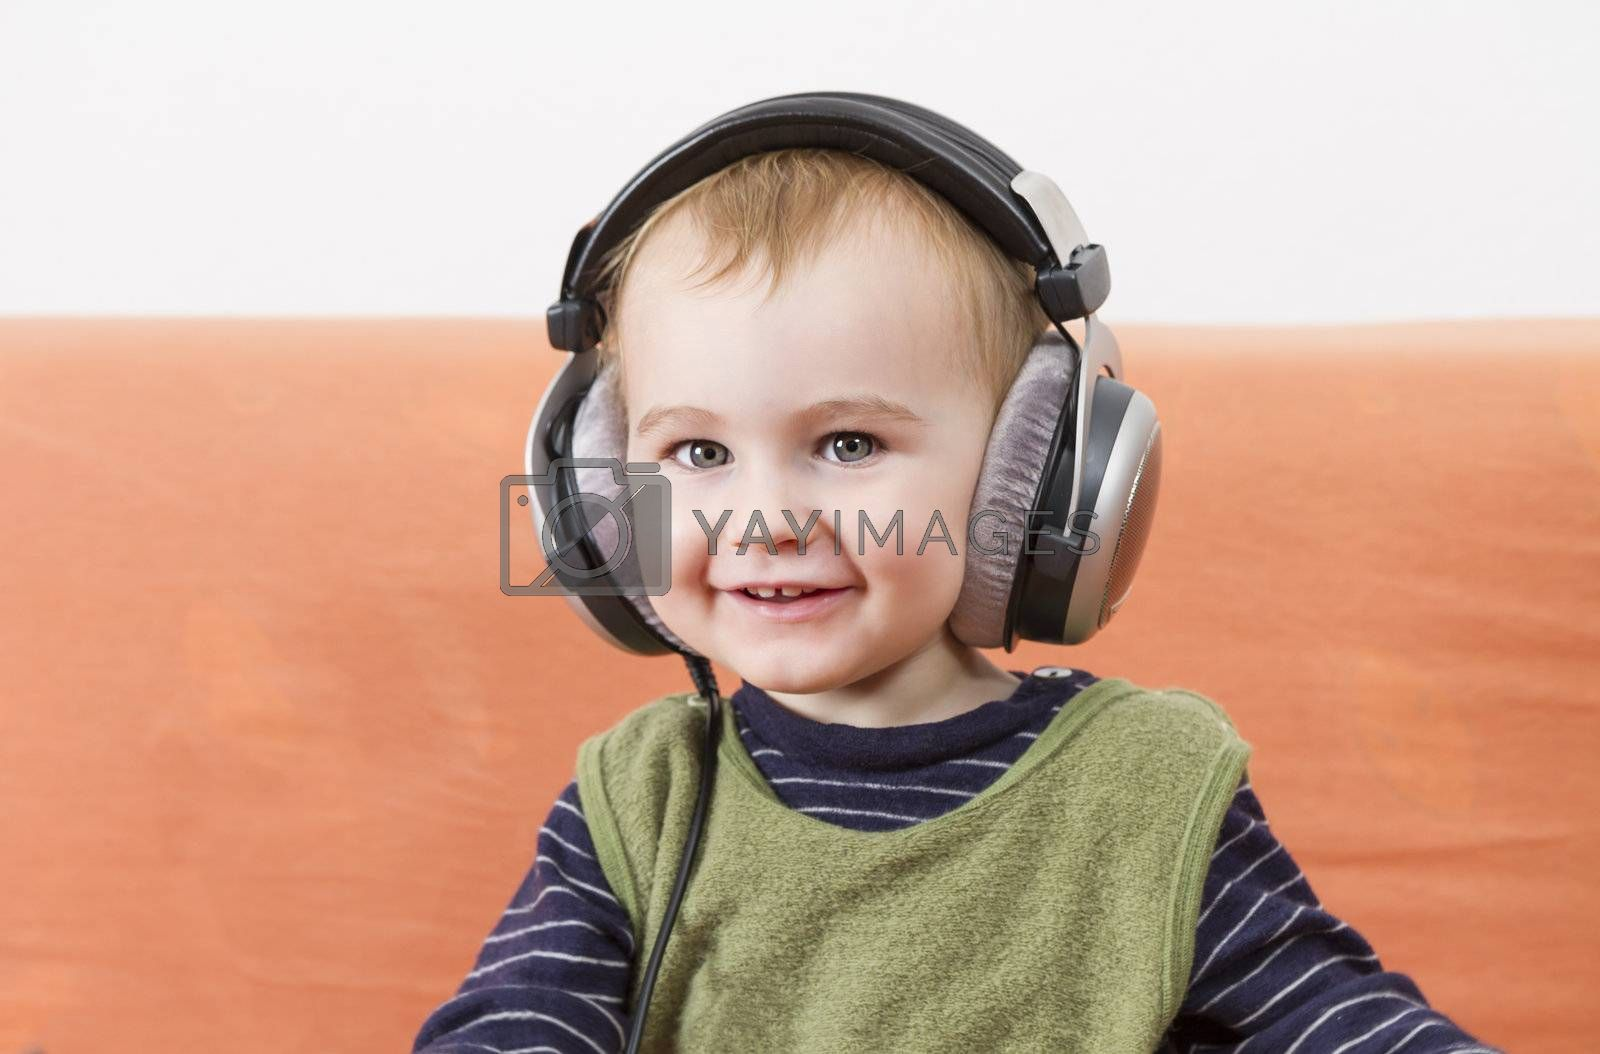 Royalty free image of young child on couch with headphone by gewoldi